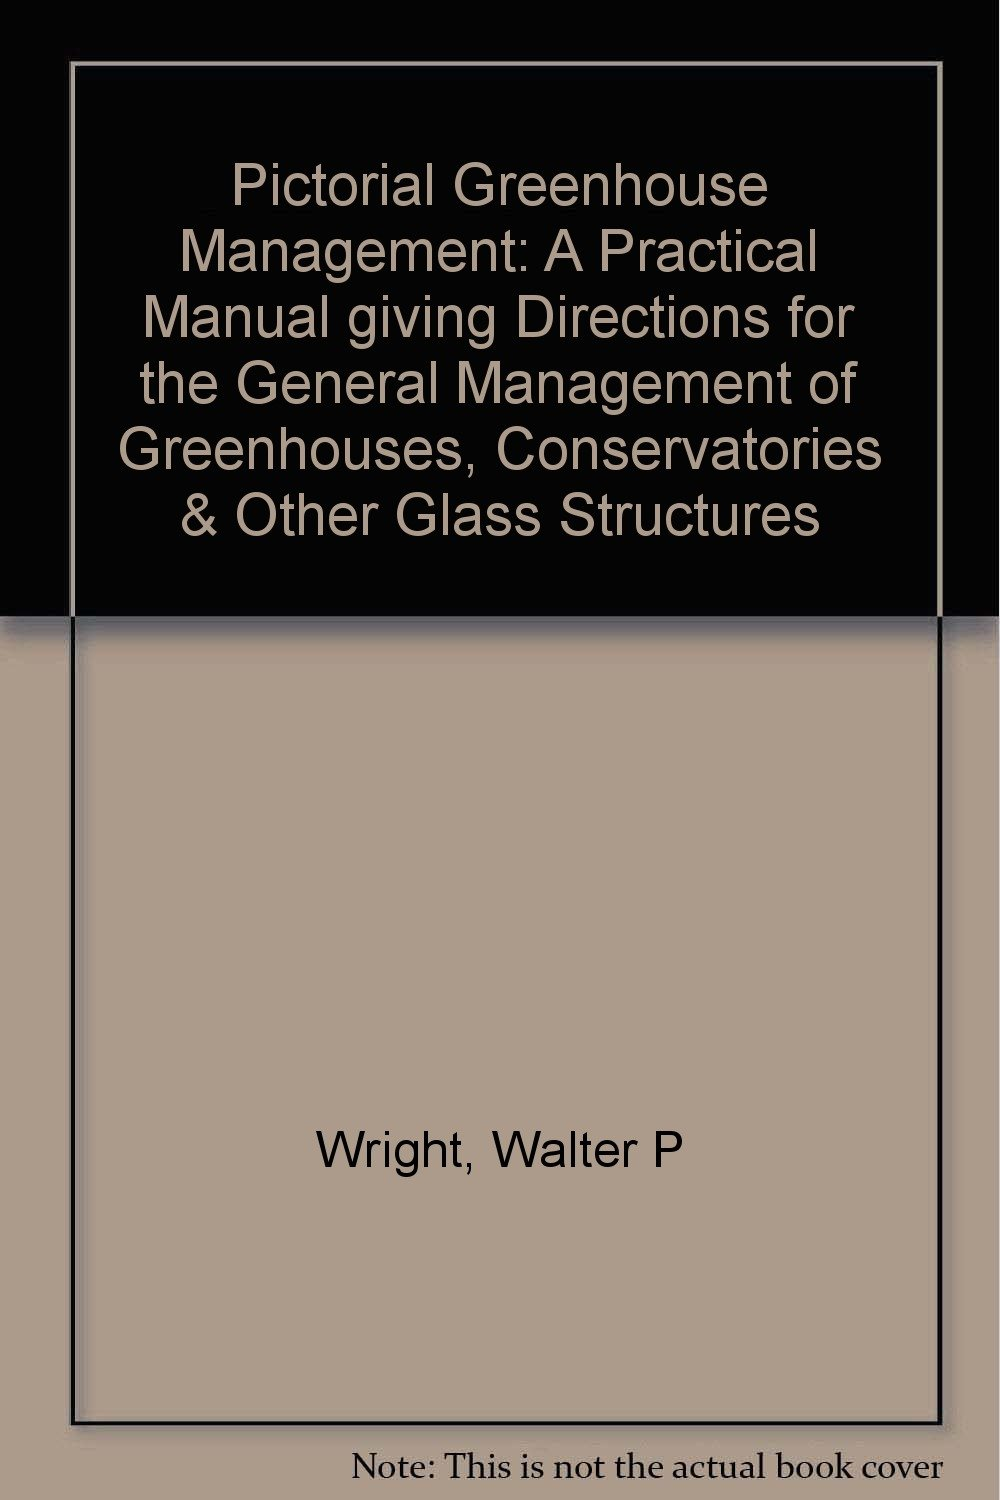 Pictorial Greenhouse Management: A Practical Manual giving Directions for the General Management of Greenhouses, Conservatories & Other Glass Structures